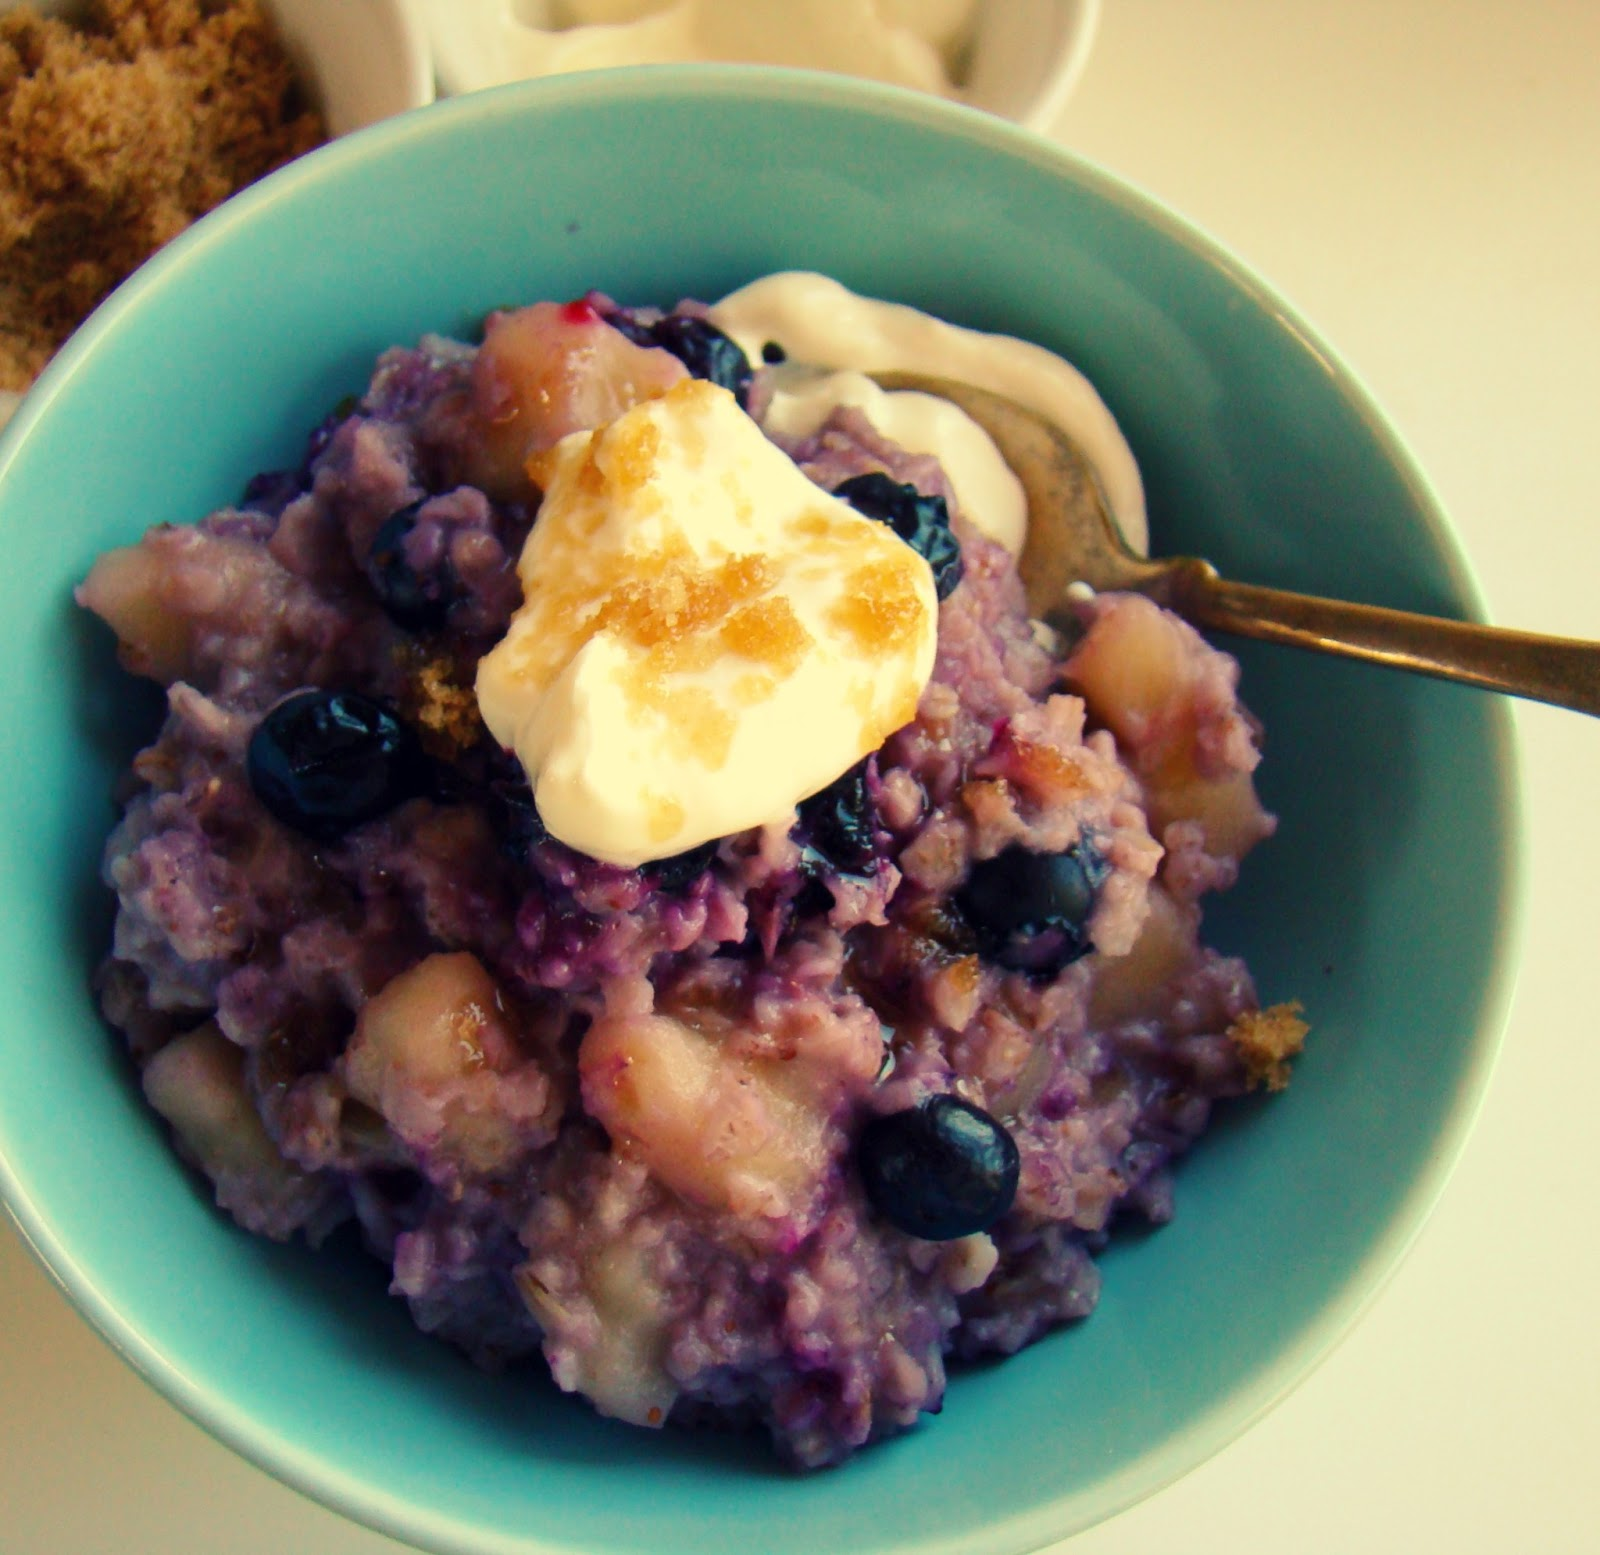 Family Feedbag: Blueberry banana oatmeal